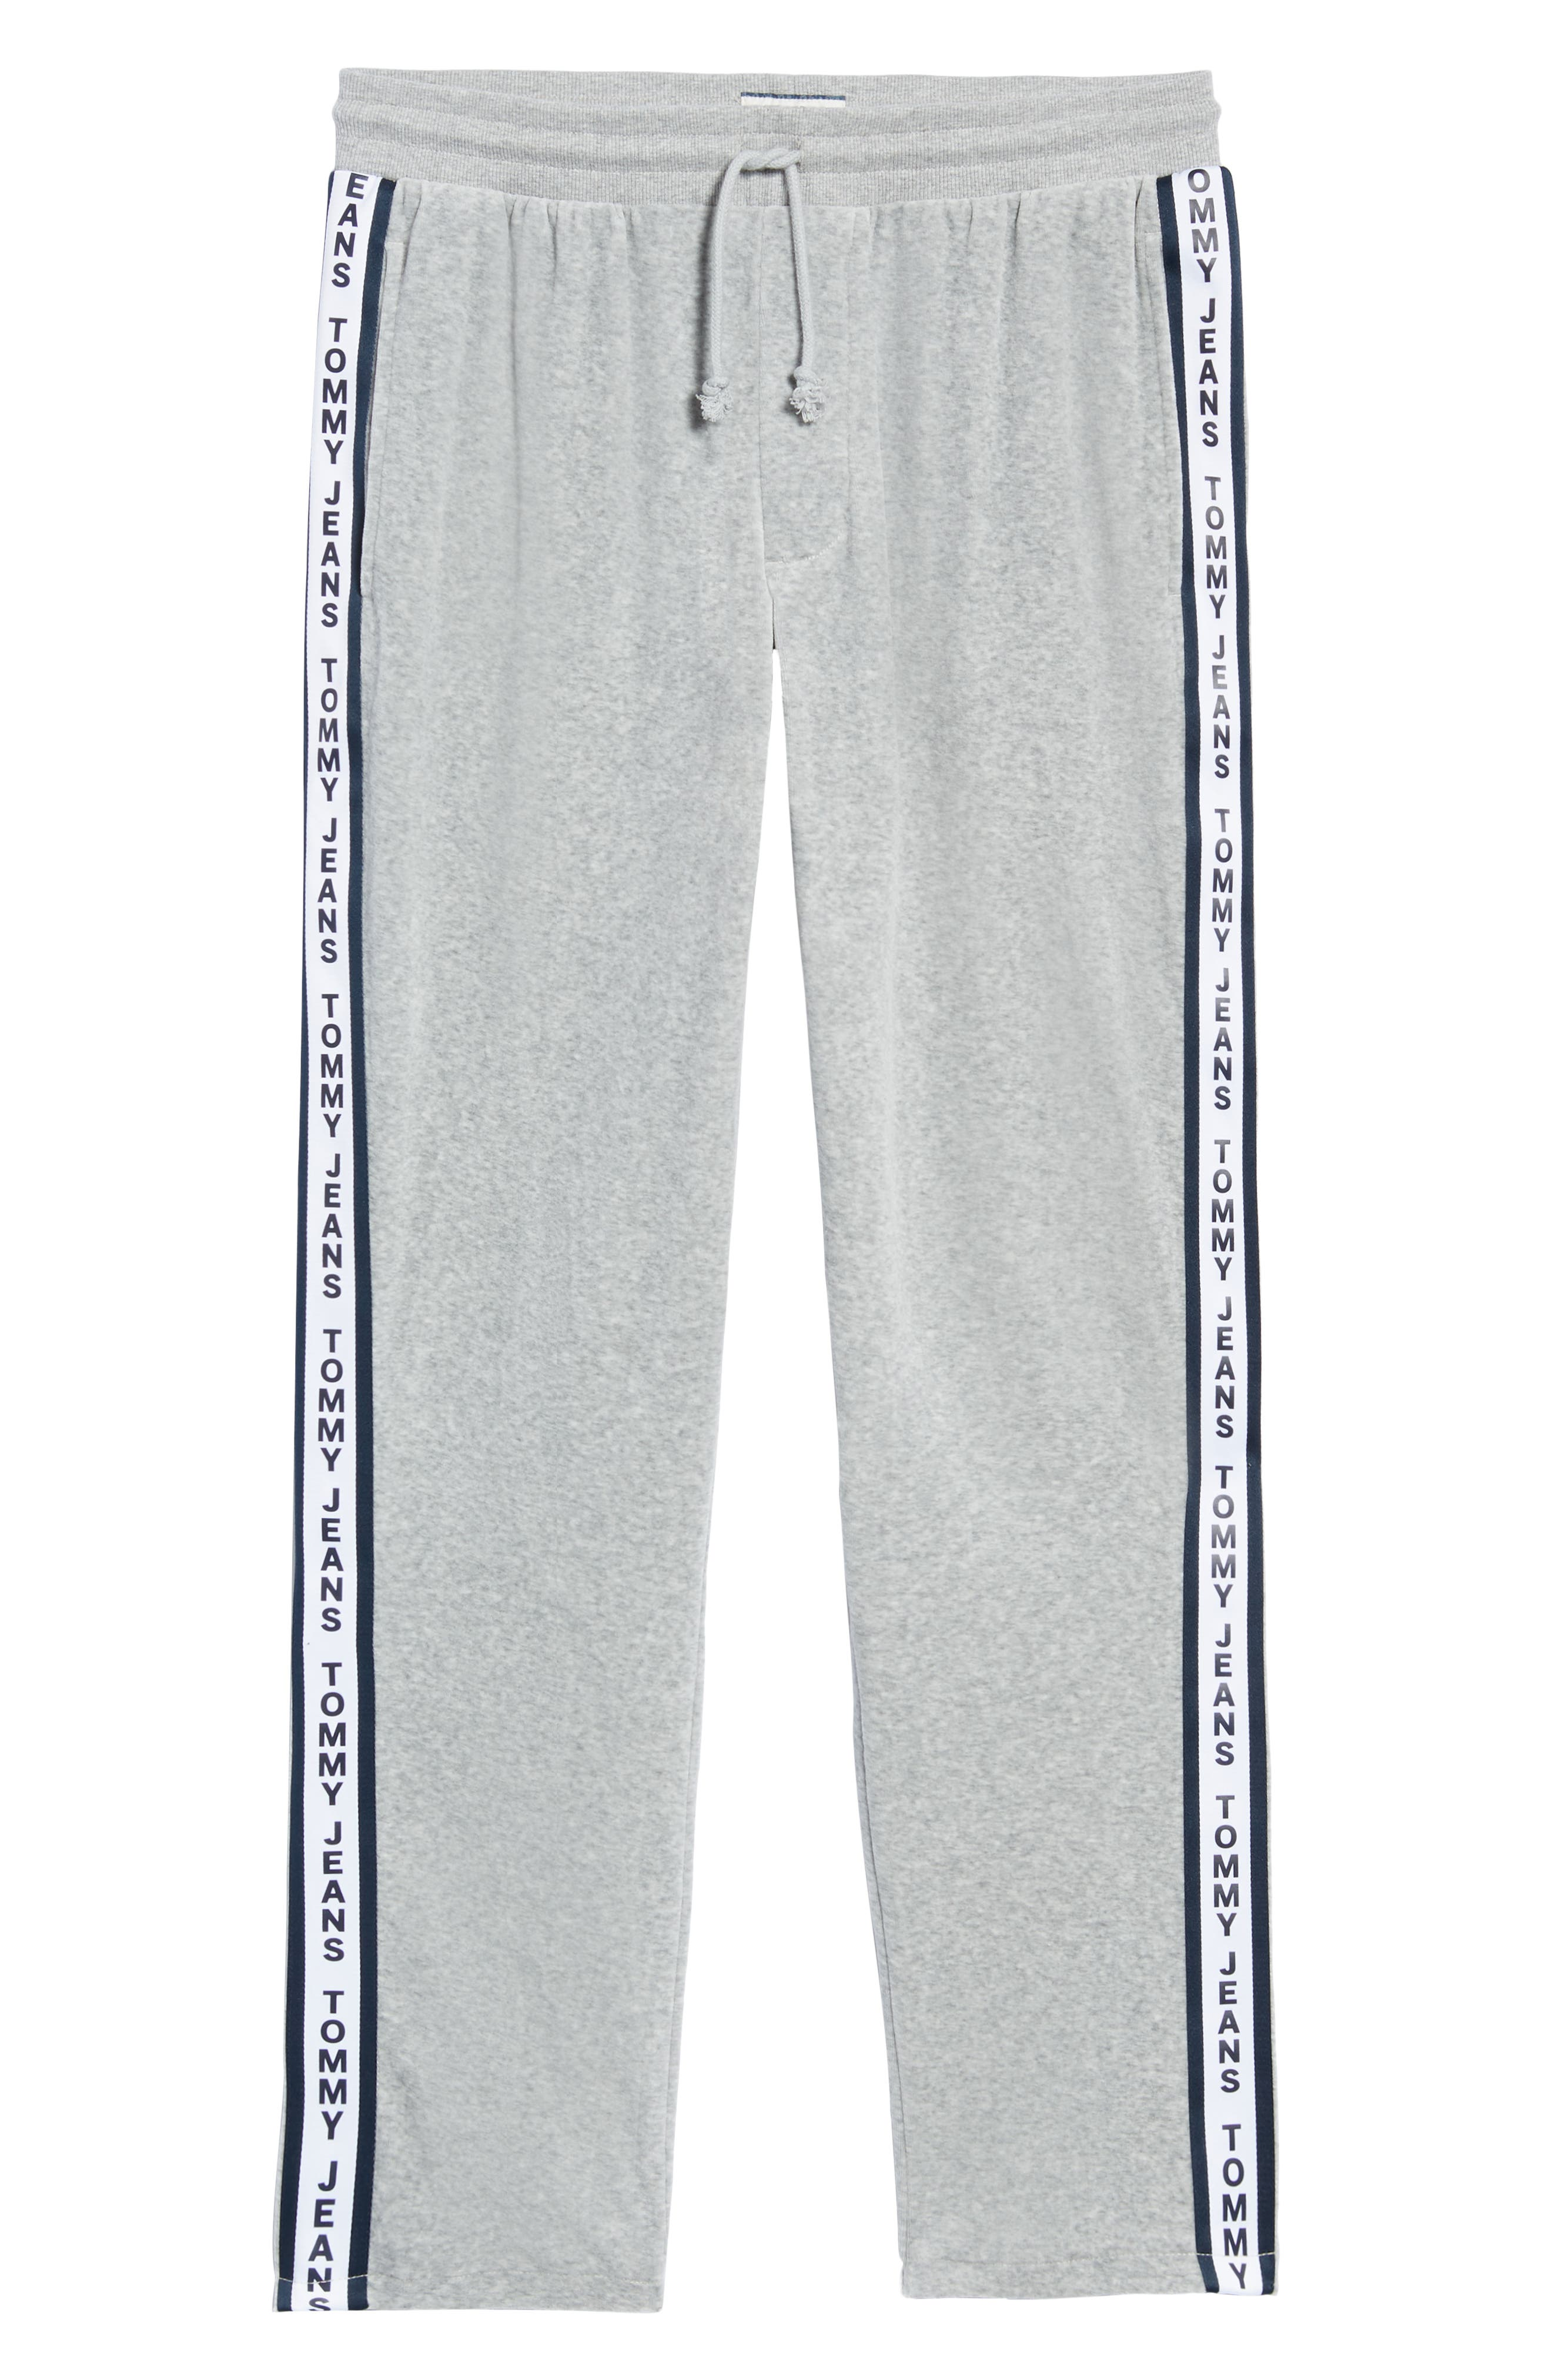 Relaxed Fit Velour Sweatpants,                             Alternate thumbnail 6, color,                             LIGHT GREY HEATHER